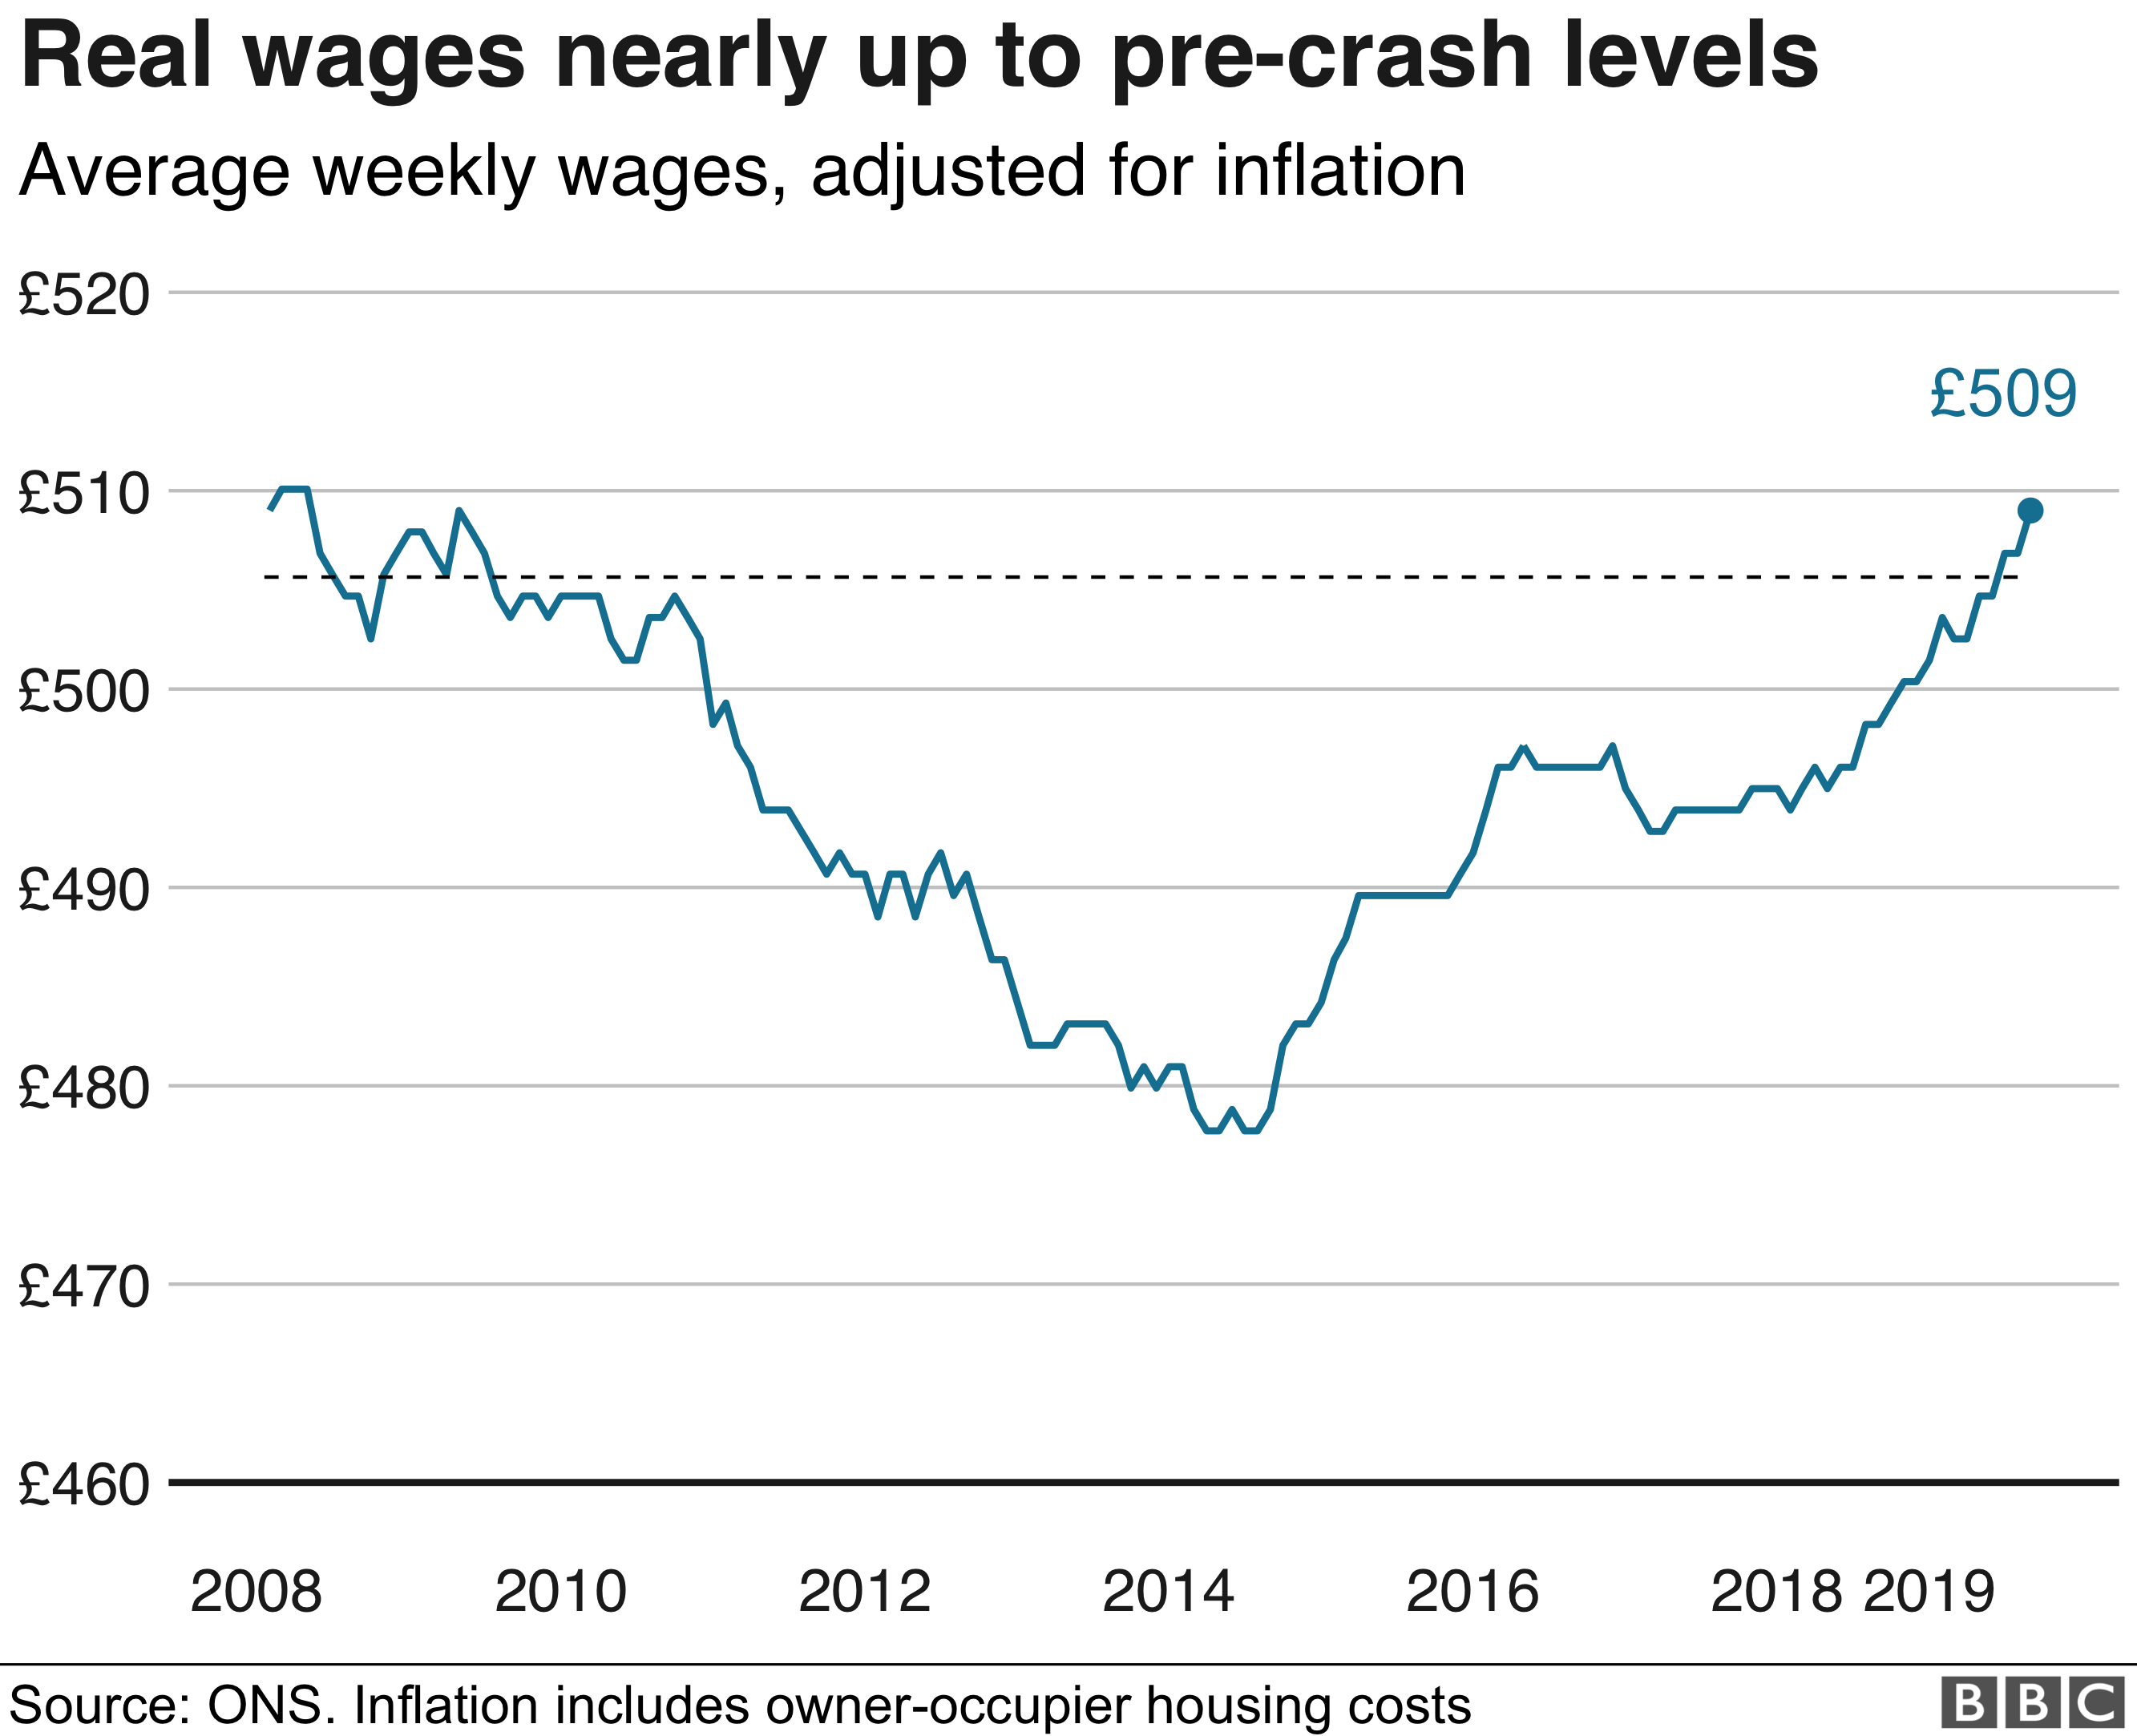 Real wages